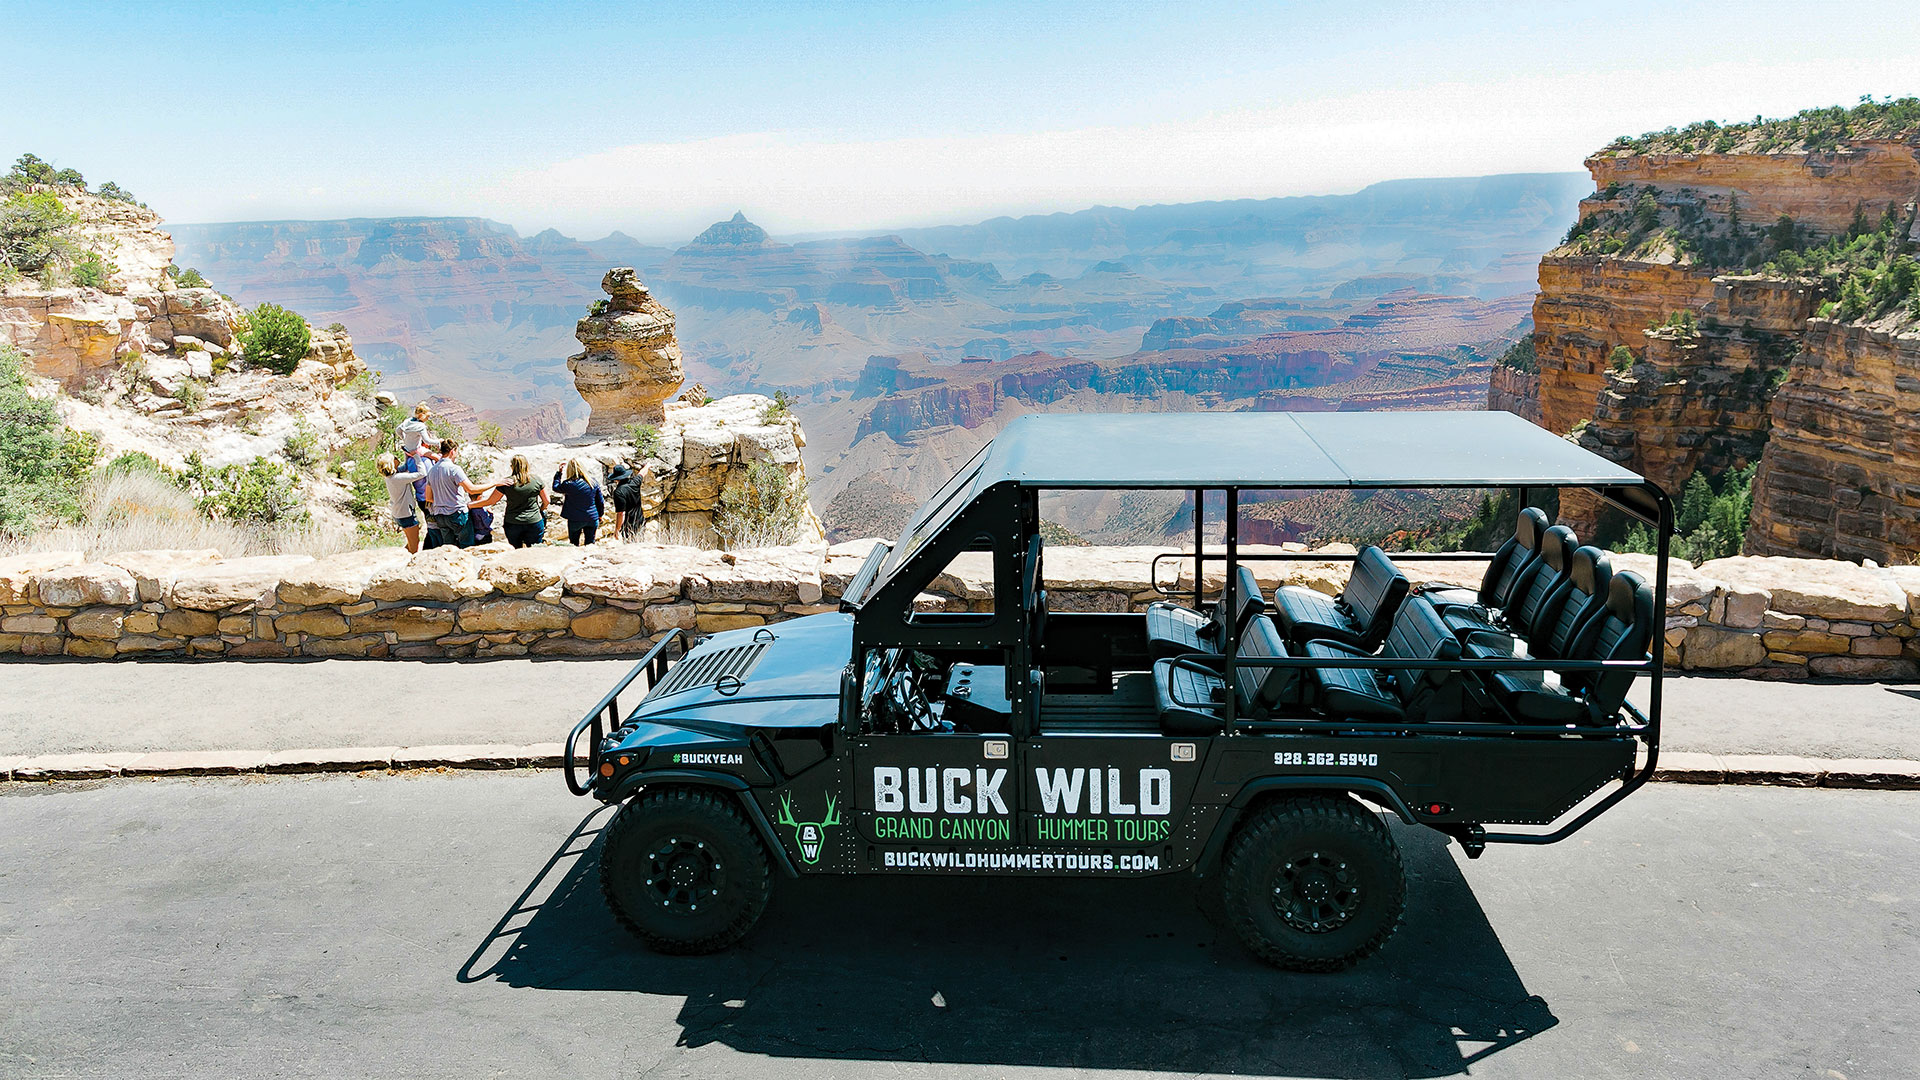 Family facing a Grand Canyon overlook with custom touring Hummer in foreground.